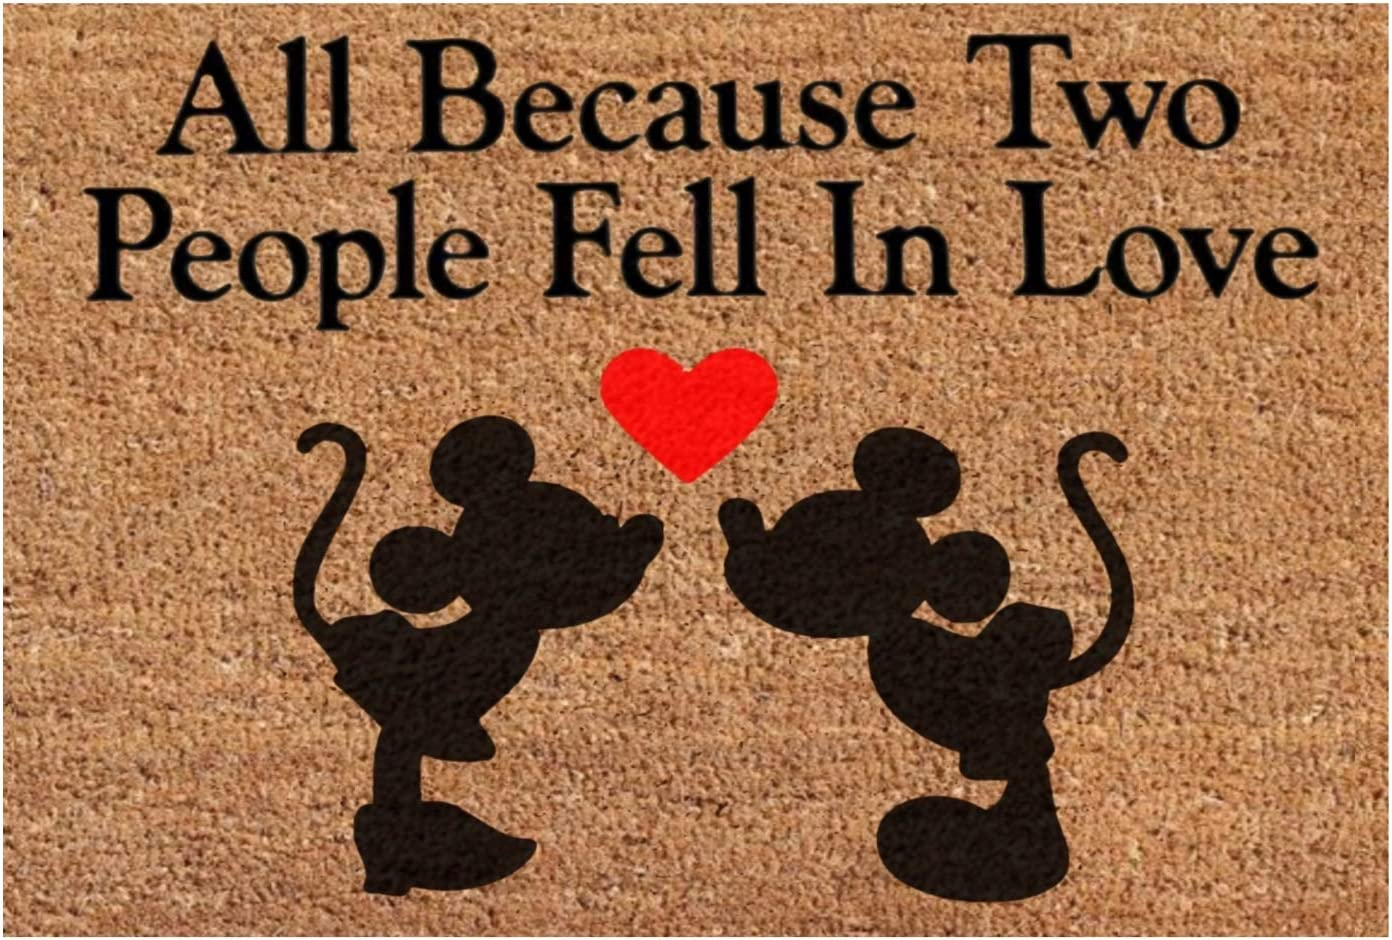 All Because Two People Fell in Love – Mickey Minnie Mouse Heart – Funny Saying Home Decor Doormat – Housewarming Wedding Anniversary Front Door Mat Rug